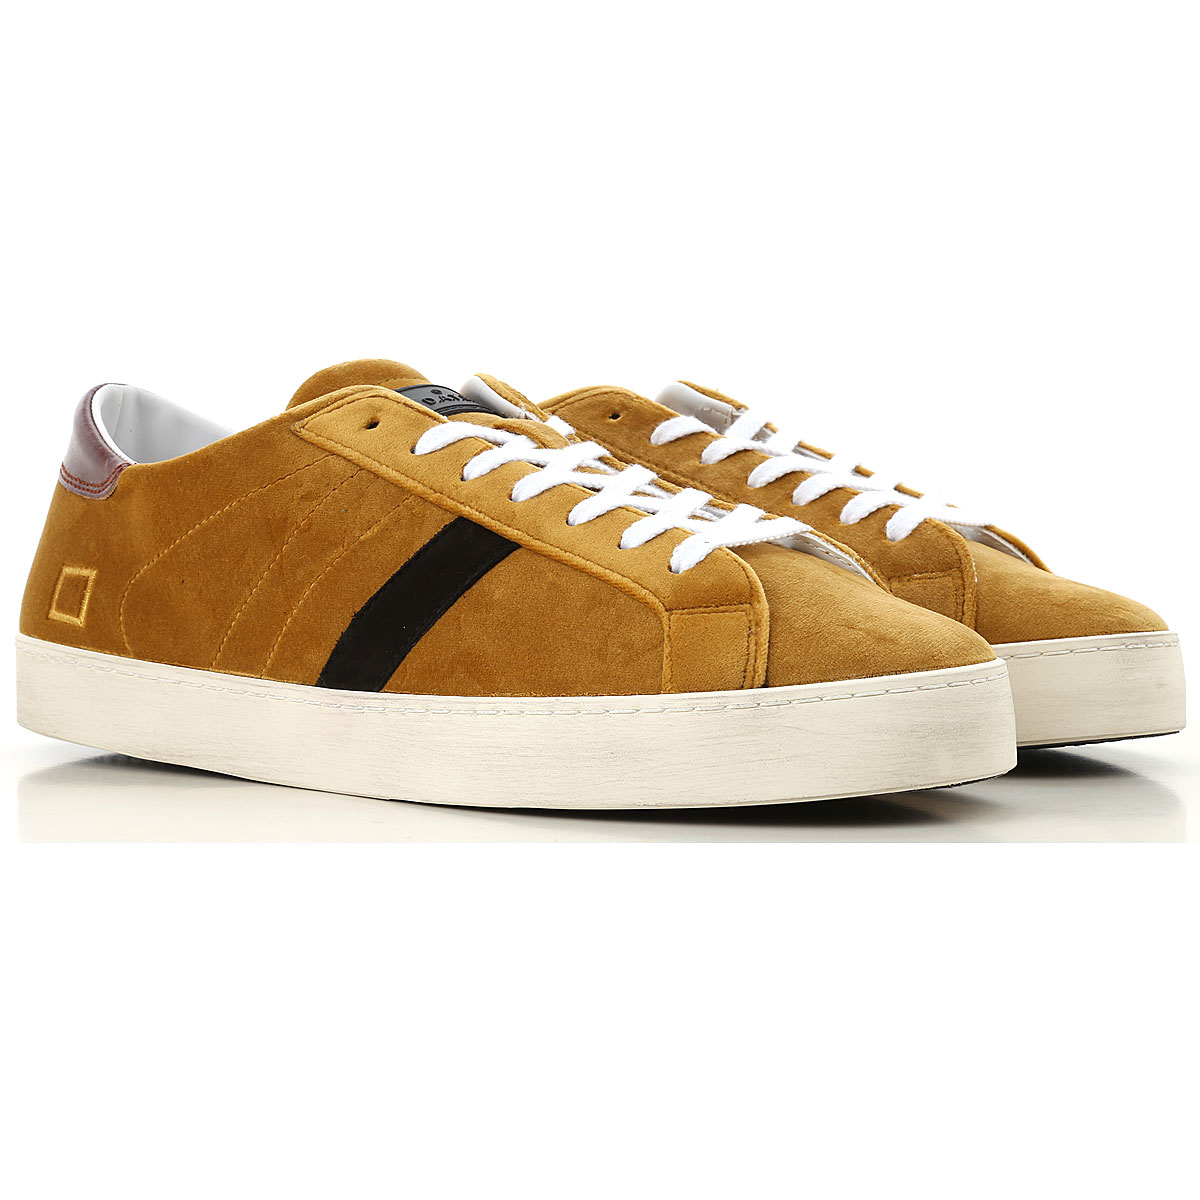 Image of D.A.T.E. Sneakers for Men, curry, Velvet, 2017, US 7 - EU 40 - UK 6 - JP 26 US 8 - EU 41 - UK 7 - JP 26.5 US 9 - EU 42 - UK 8 - JP 27 US 10 - EU 43 - UK 9 - JP 27.5 US 11 - EU 44 - UK 10 - JP 28 US 12 - EU 45 - UK 11 - JP 28.5